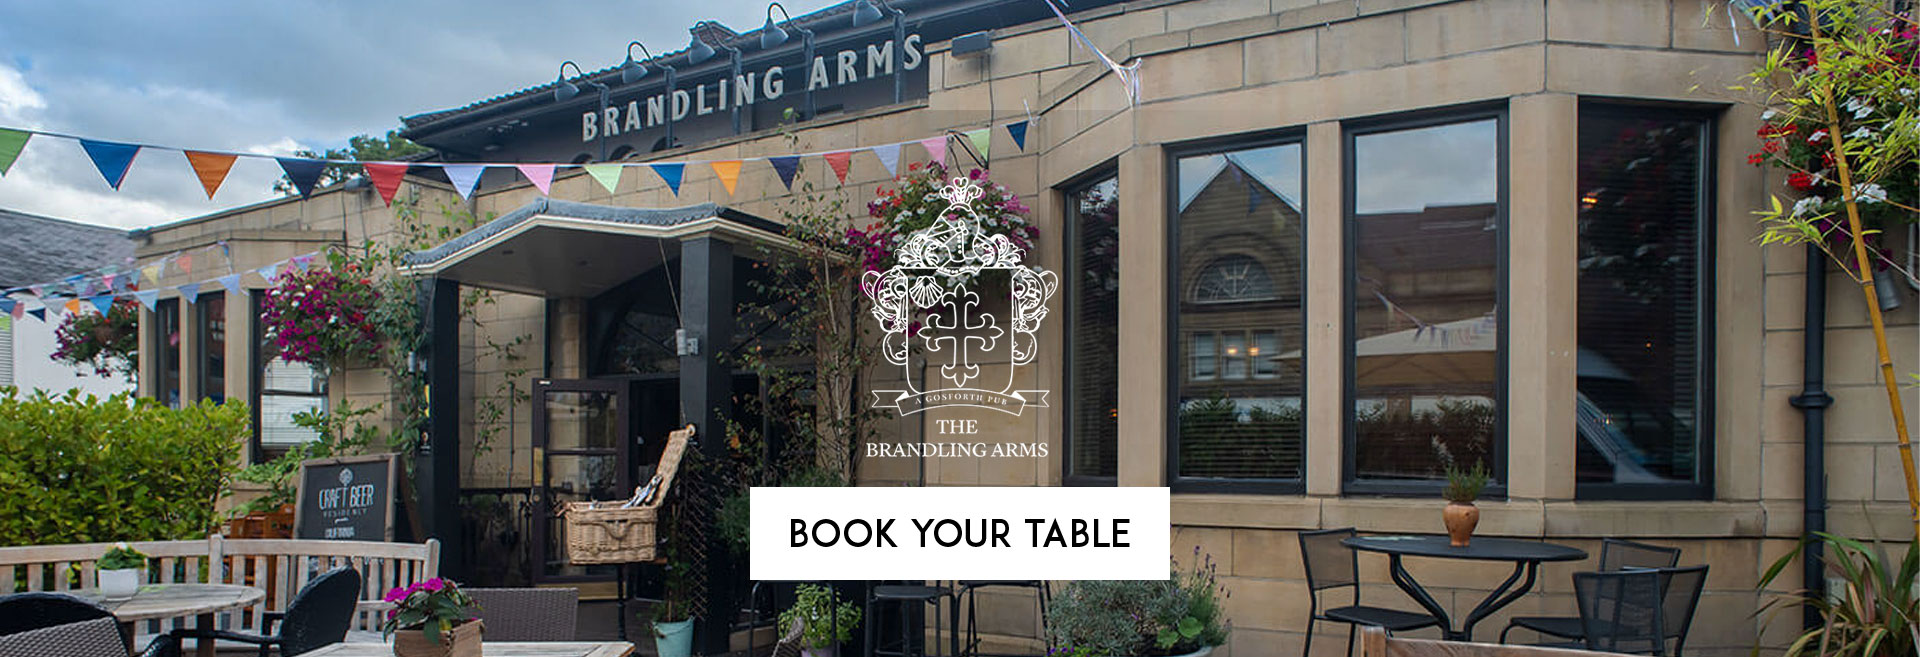 Book Your Table at The Brandling Arms